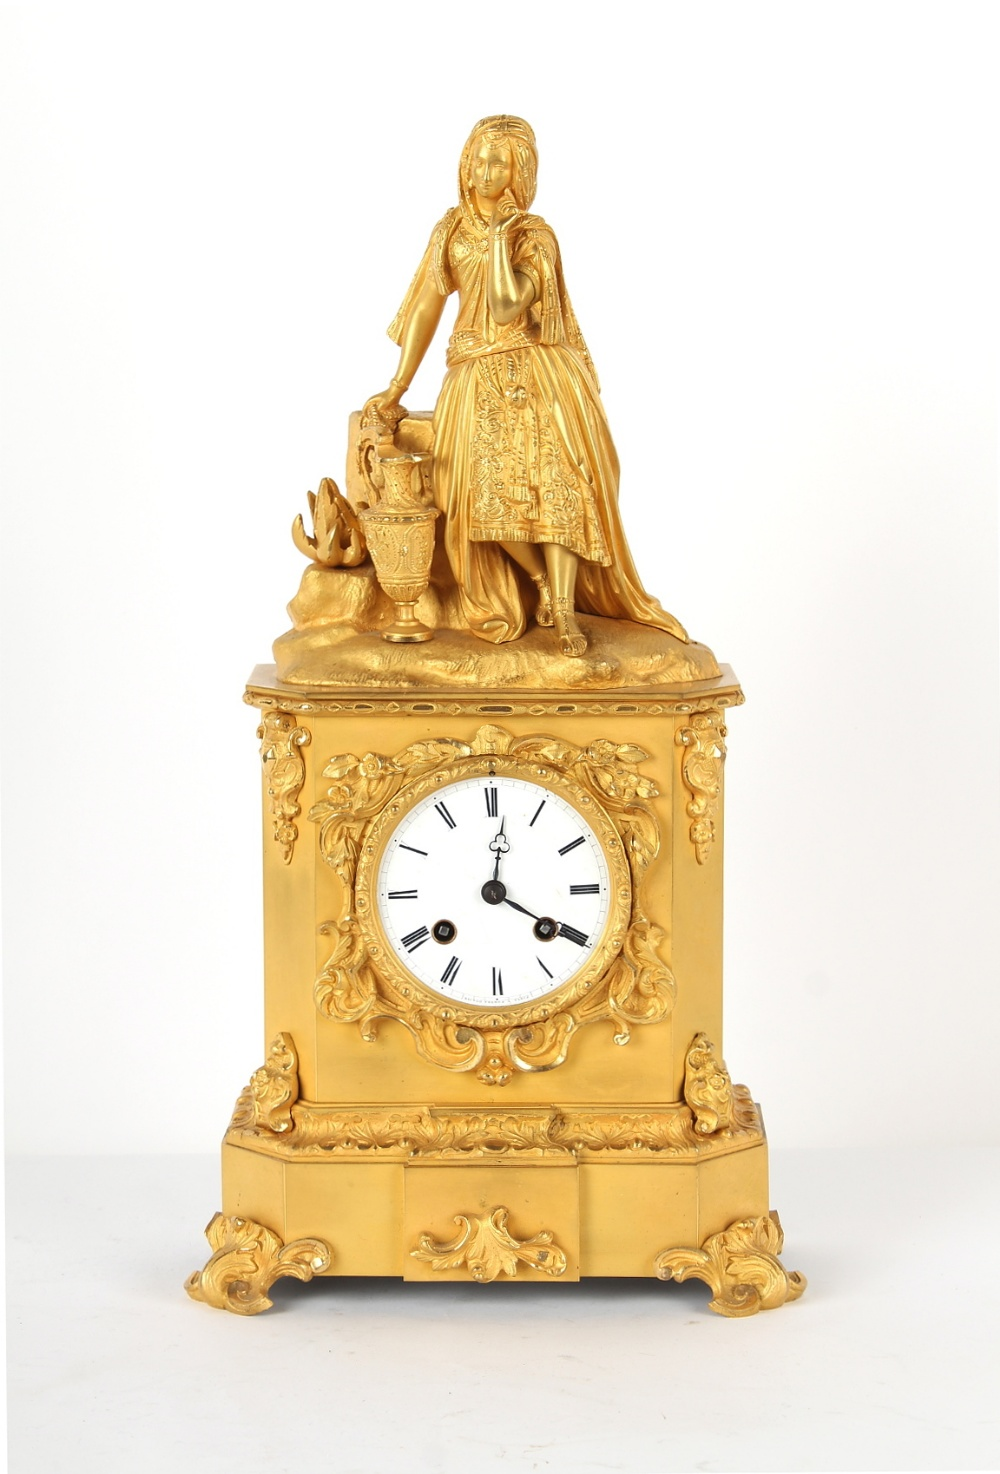 Property of a lady - a French ormolu cased mantel clock, circa 1845, surmounted by a figure of a